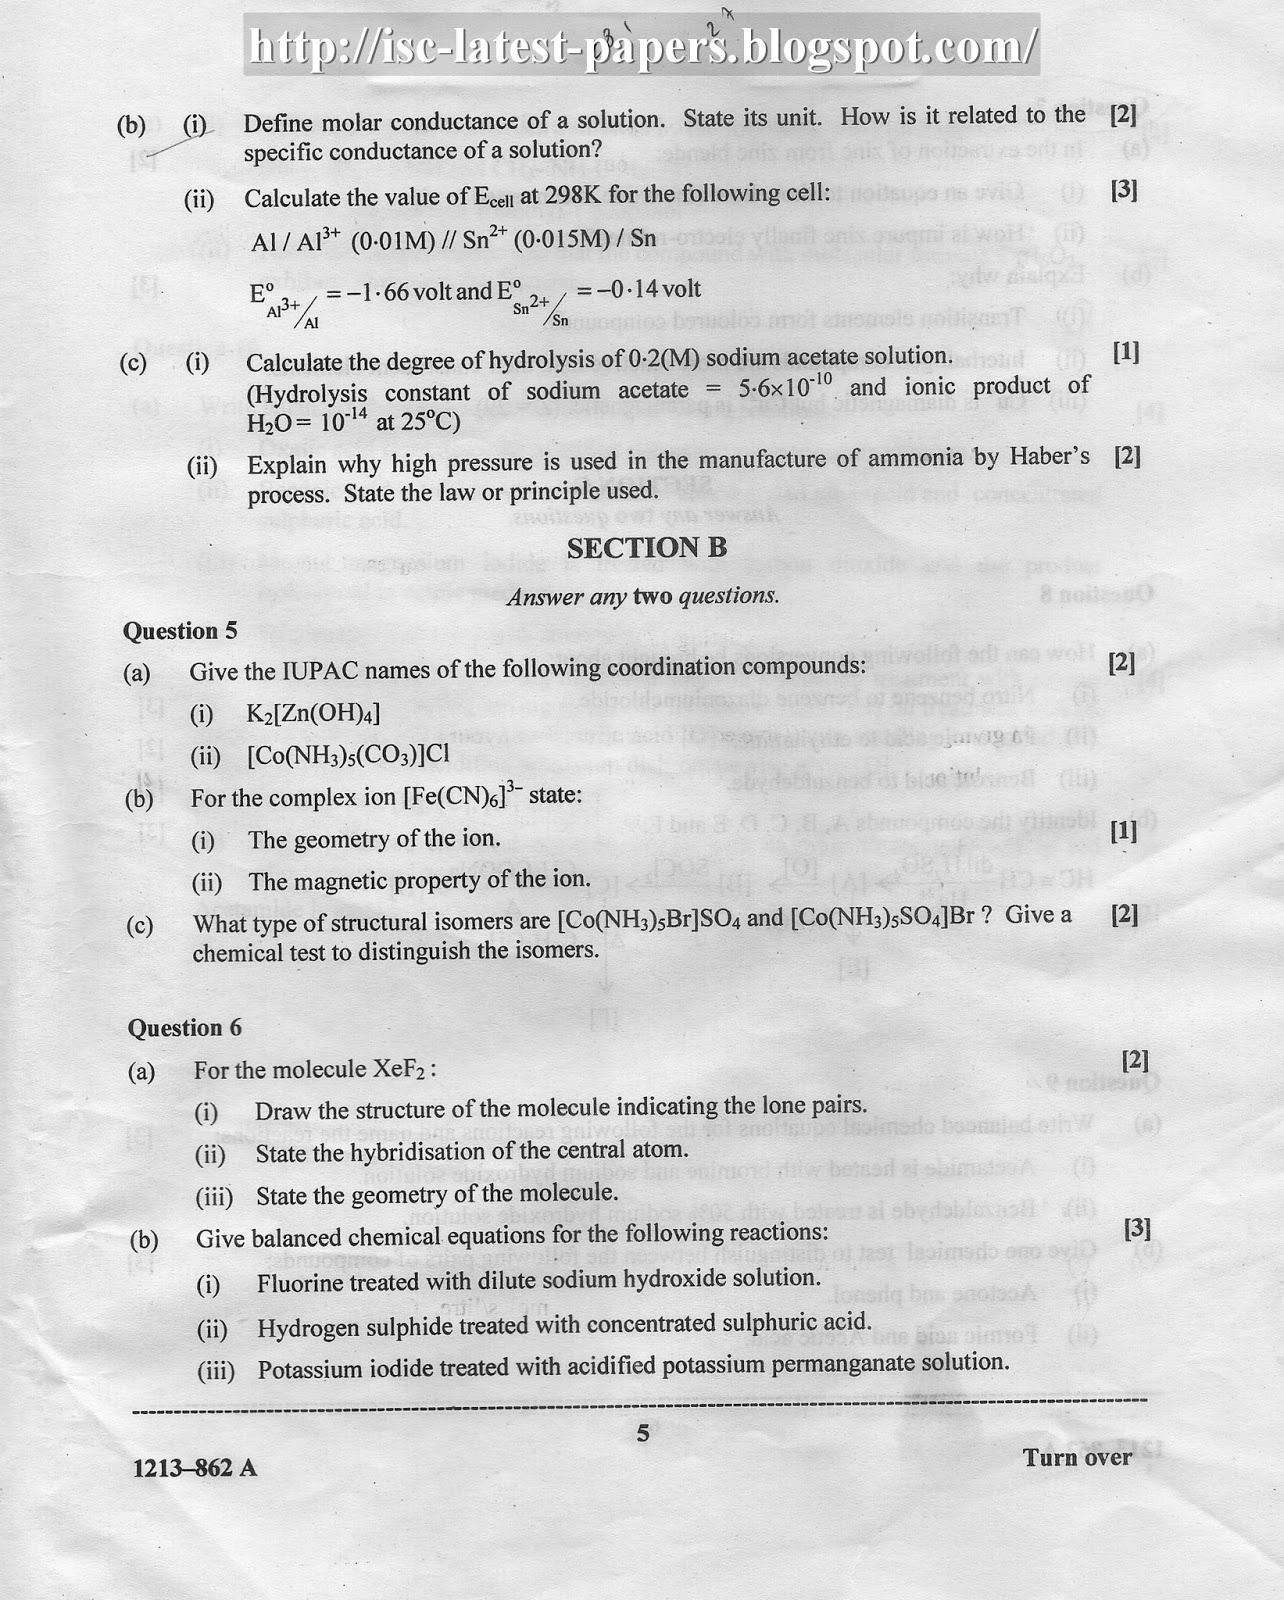 chemistry papers American chemical society: chemistry for life undergraduate research in chemistry guide how to prepare a proper scientific paper or poster.